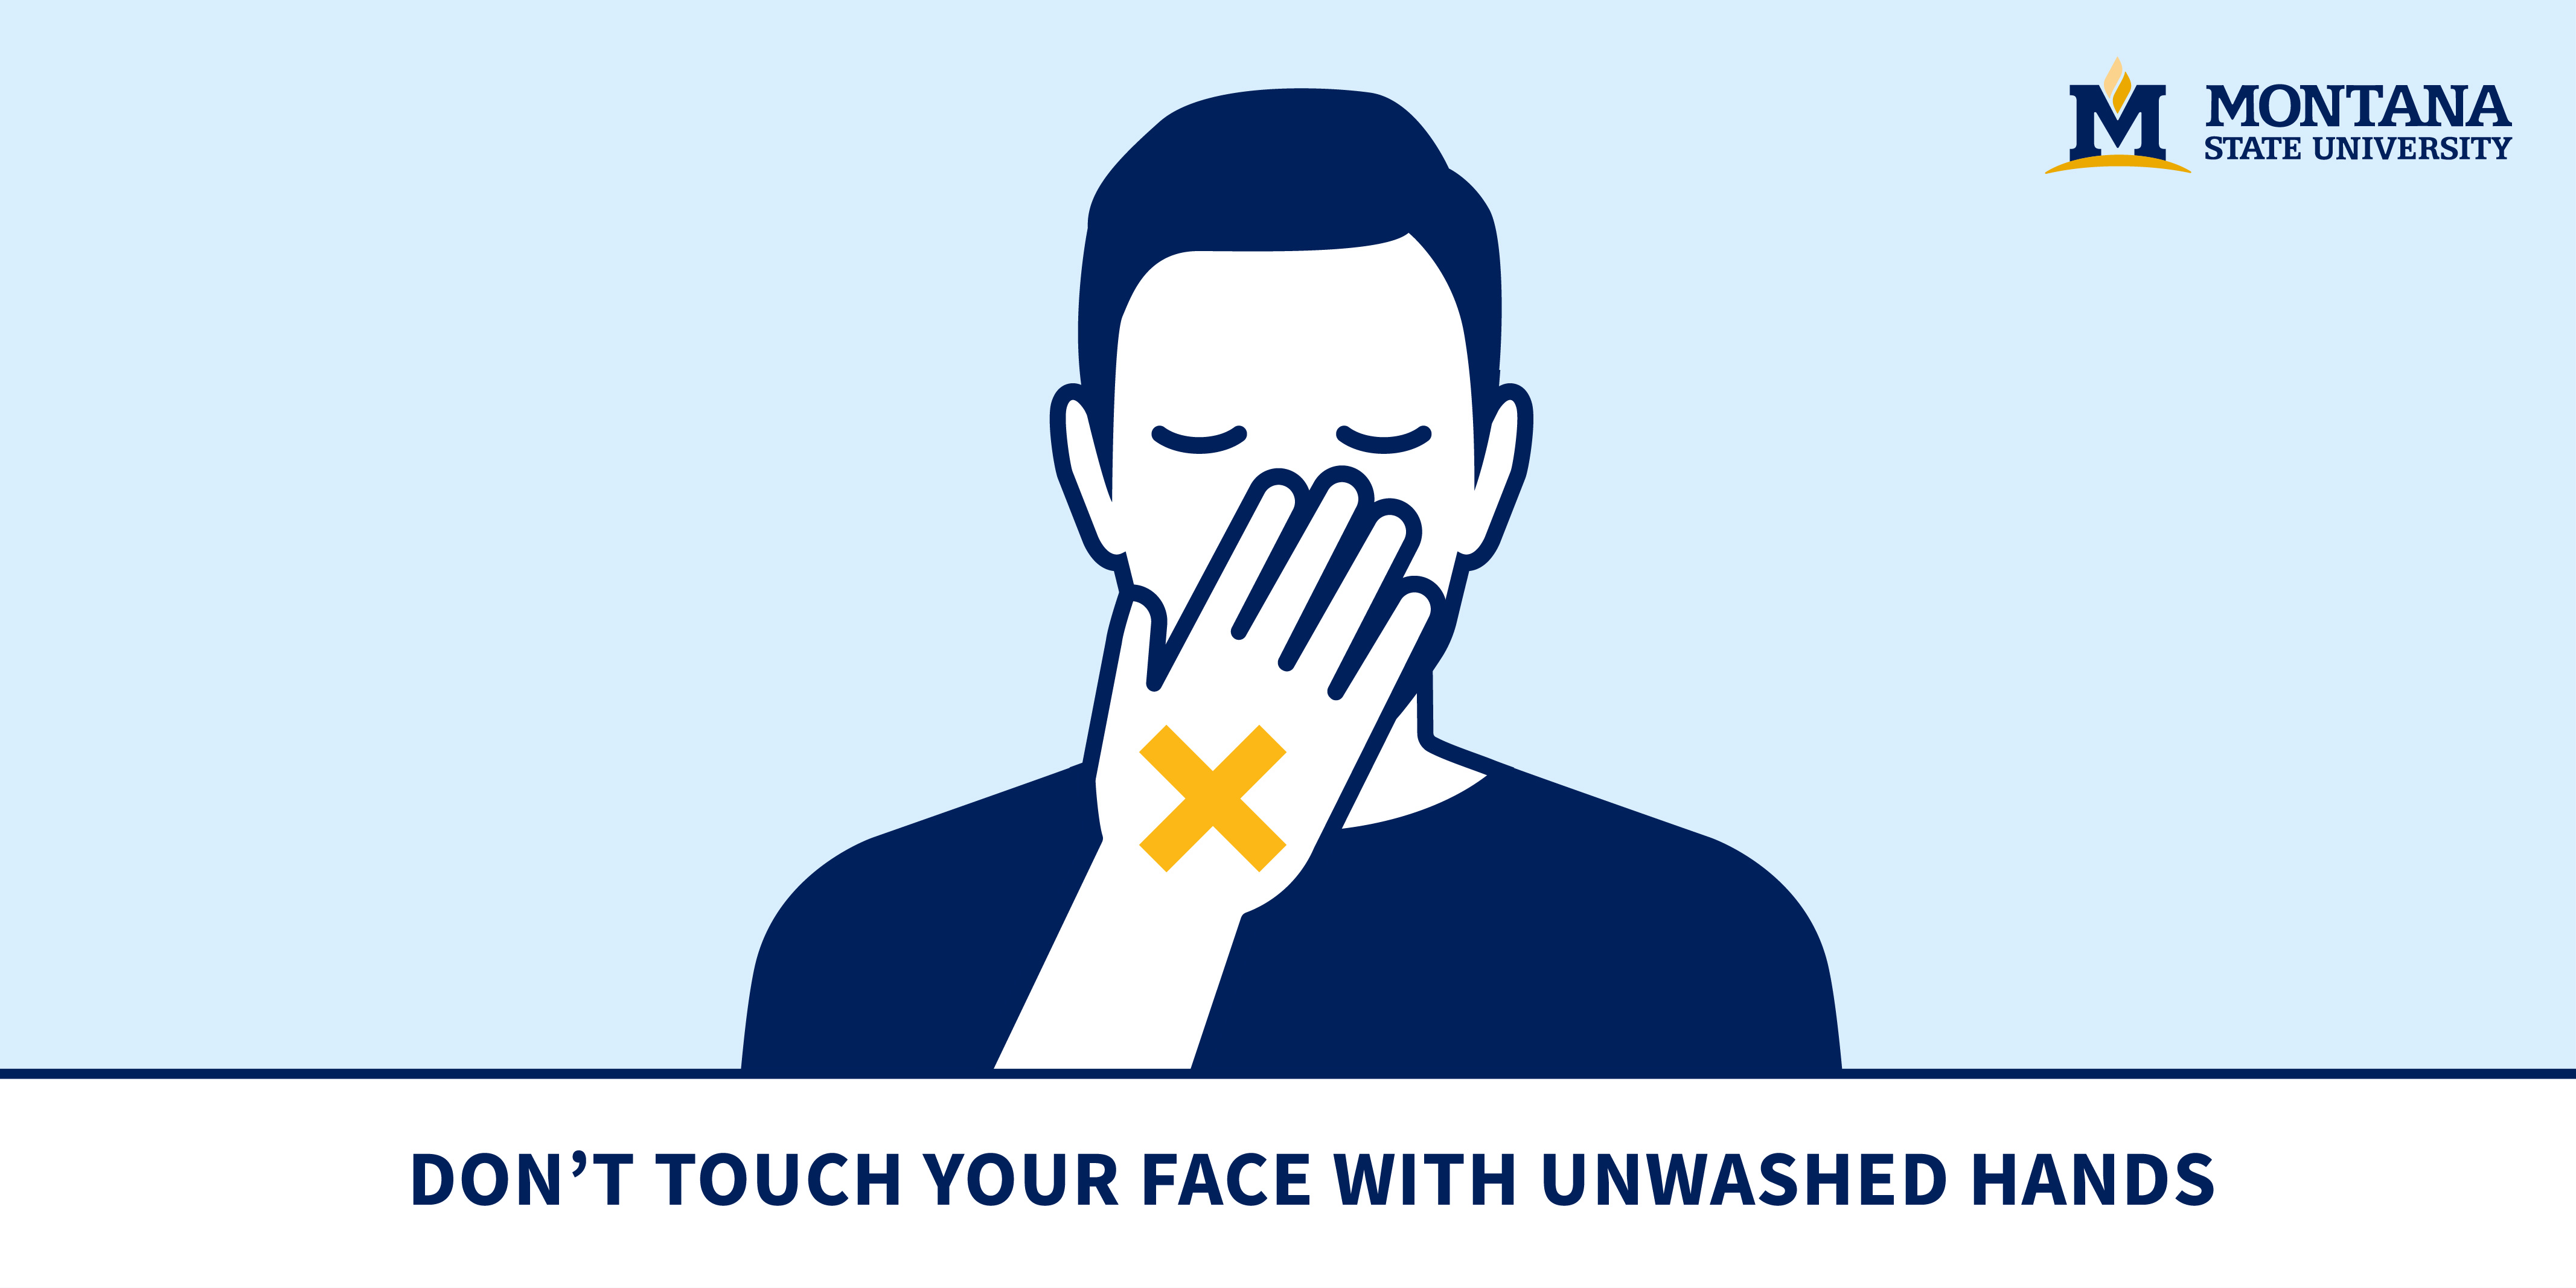 Don't Touch Your Face With Unwashed Hands